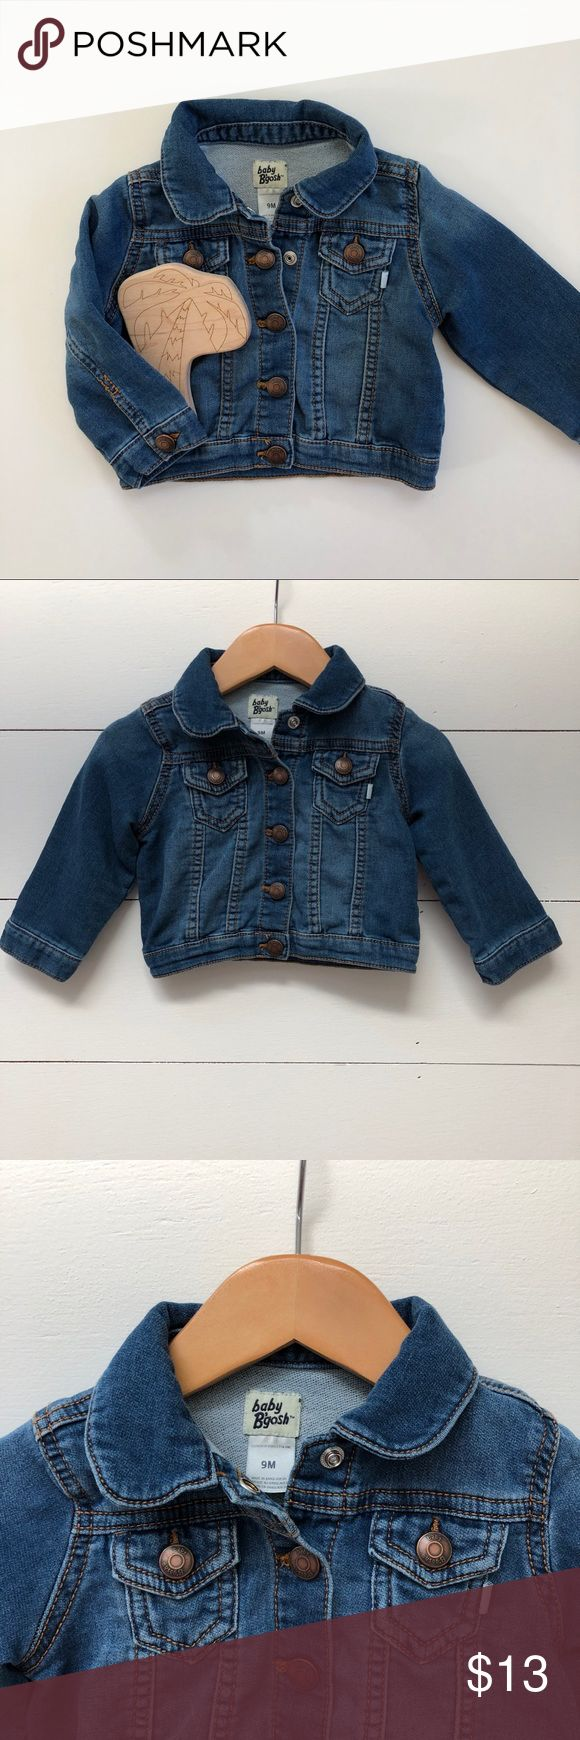 Baby Denim Jacket 9 months Like new baby denim jacket for girl or boy. Love this because it has stretch to it so its comfy. a lot of denim jackets are more stiff - size 9 months from OshKosh/ Baby B'Gosh OshKosh B'gosh Jackets & Coats